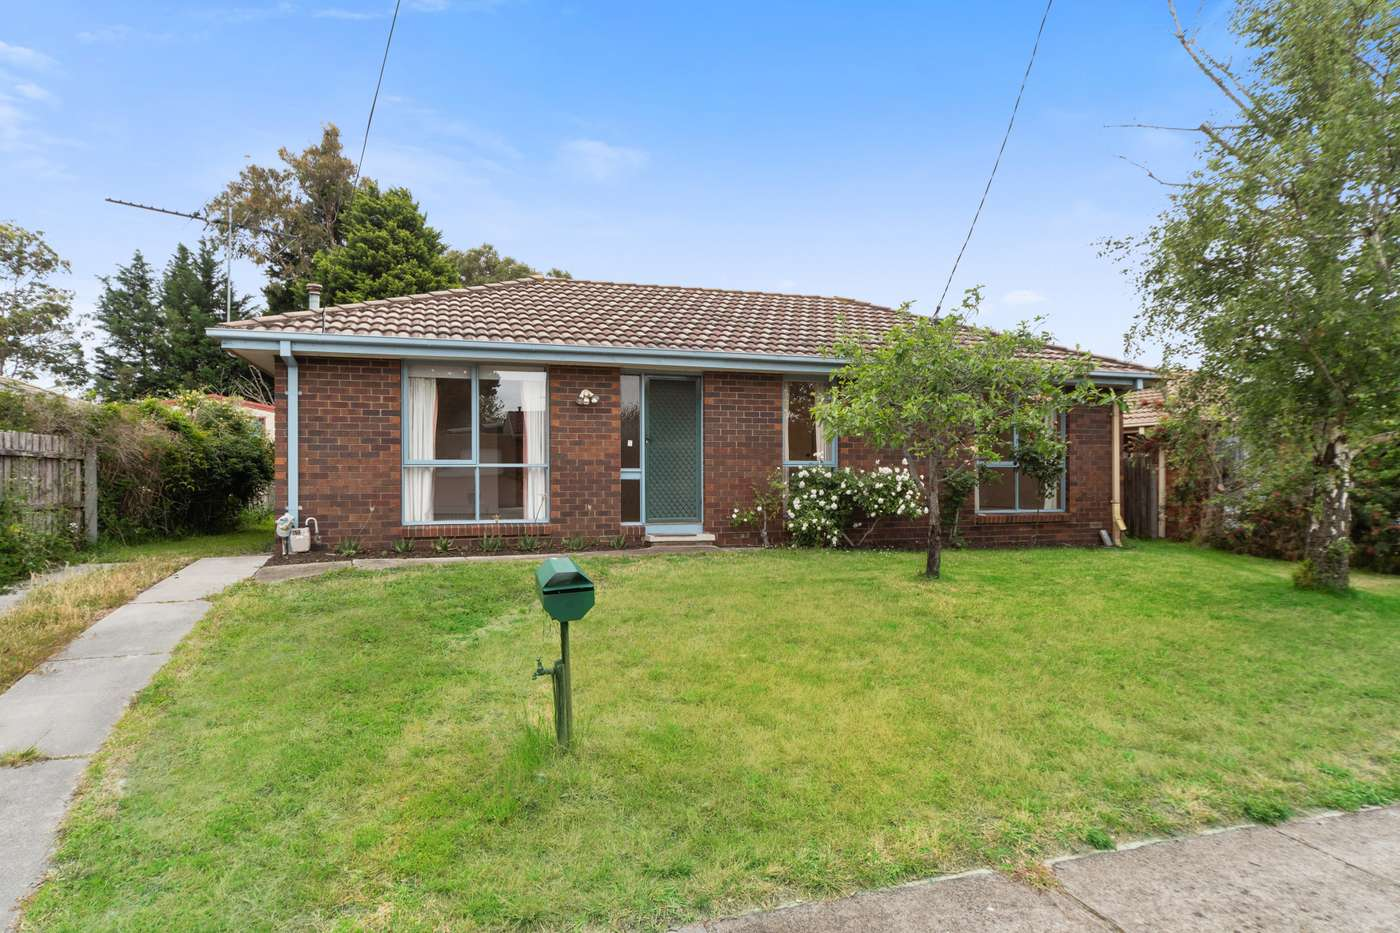 Main view of Homely house listing, 12 Juliana Drive, Carrum Downs, VIC 3201